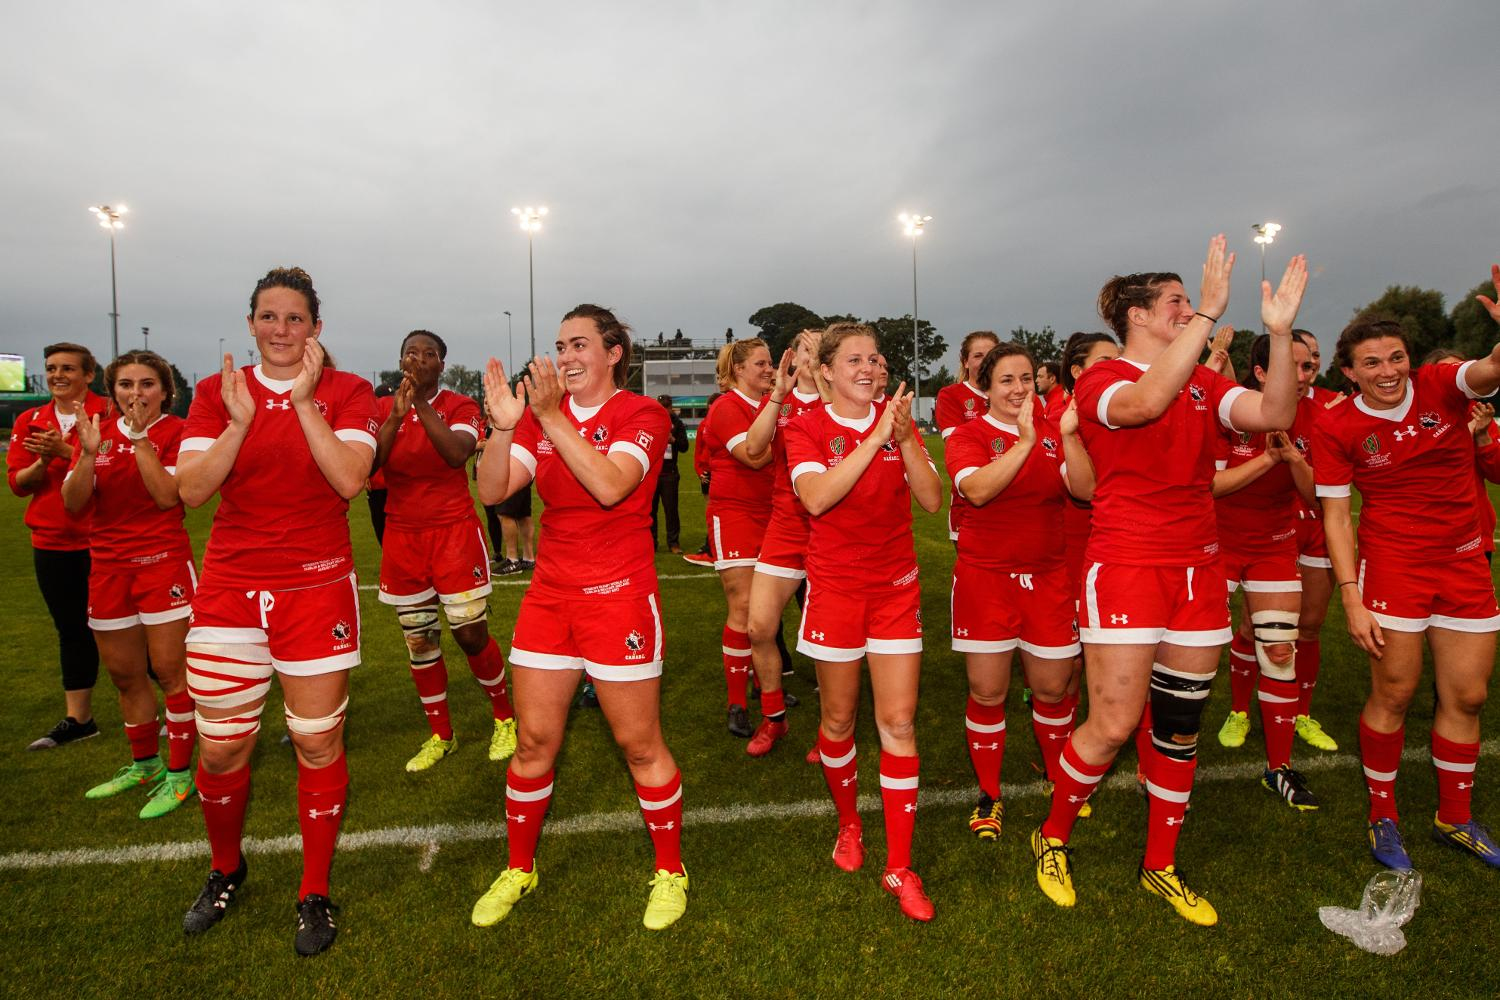 WRWC 2017: Canada players celebrate winning 22/8/2017